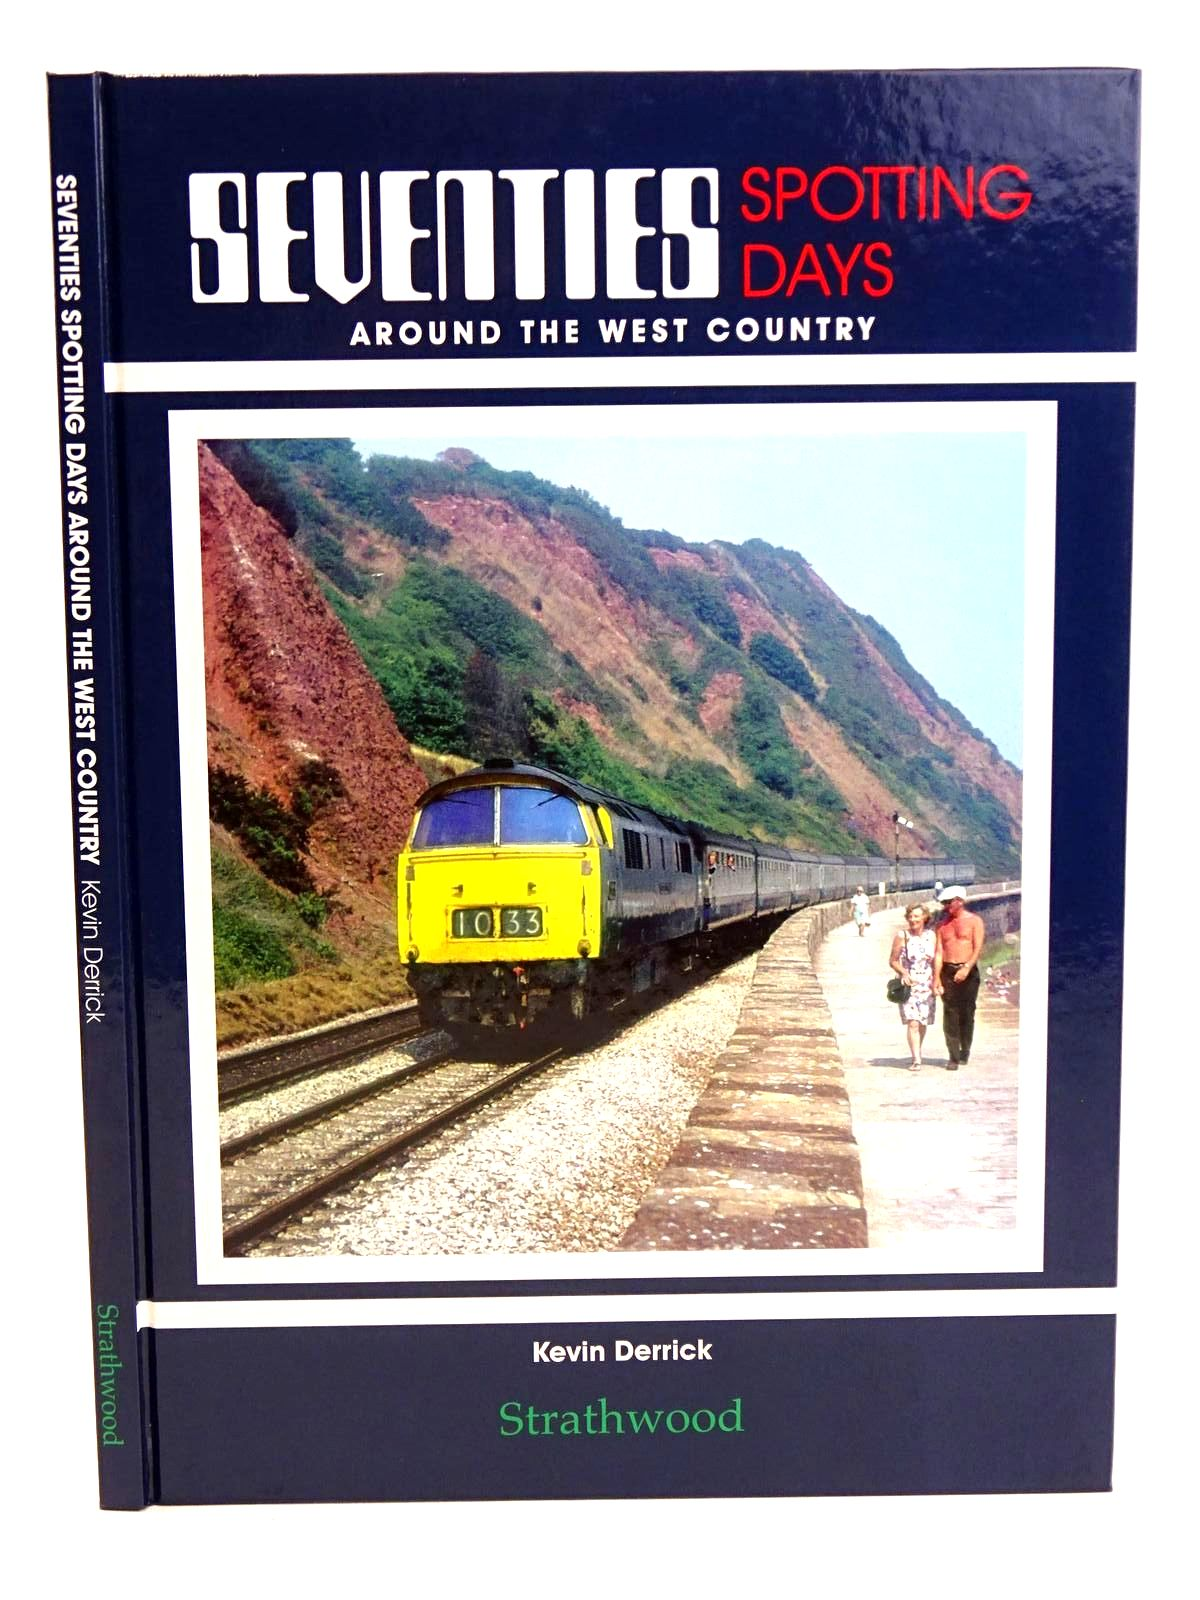 Photo of SEVENTIES SPOTTING DAYS AROUND THE WEST COUNTRY written by Derrick, Kevin published by Strathwood Ltd (STOCK CODE: 1818221)  for sale by Stella & Rose's Books